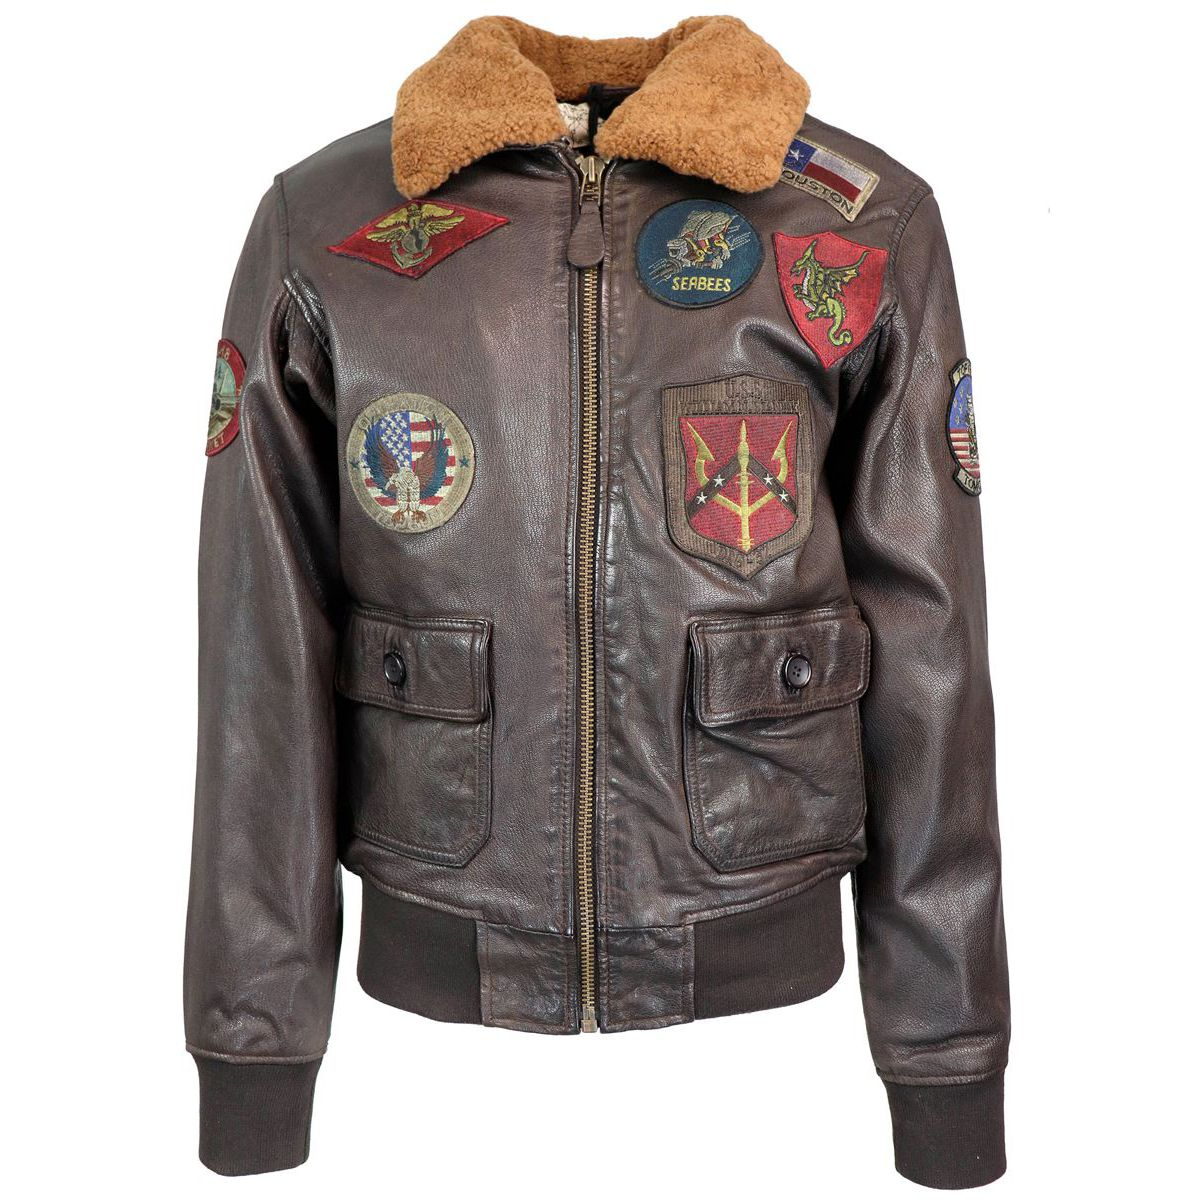 Maverick leather jacket with patch applications Brown Top Gun